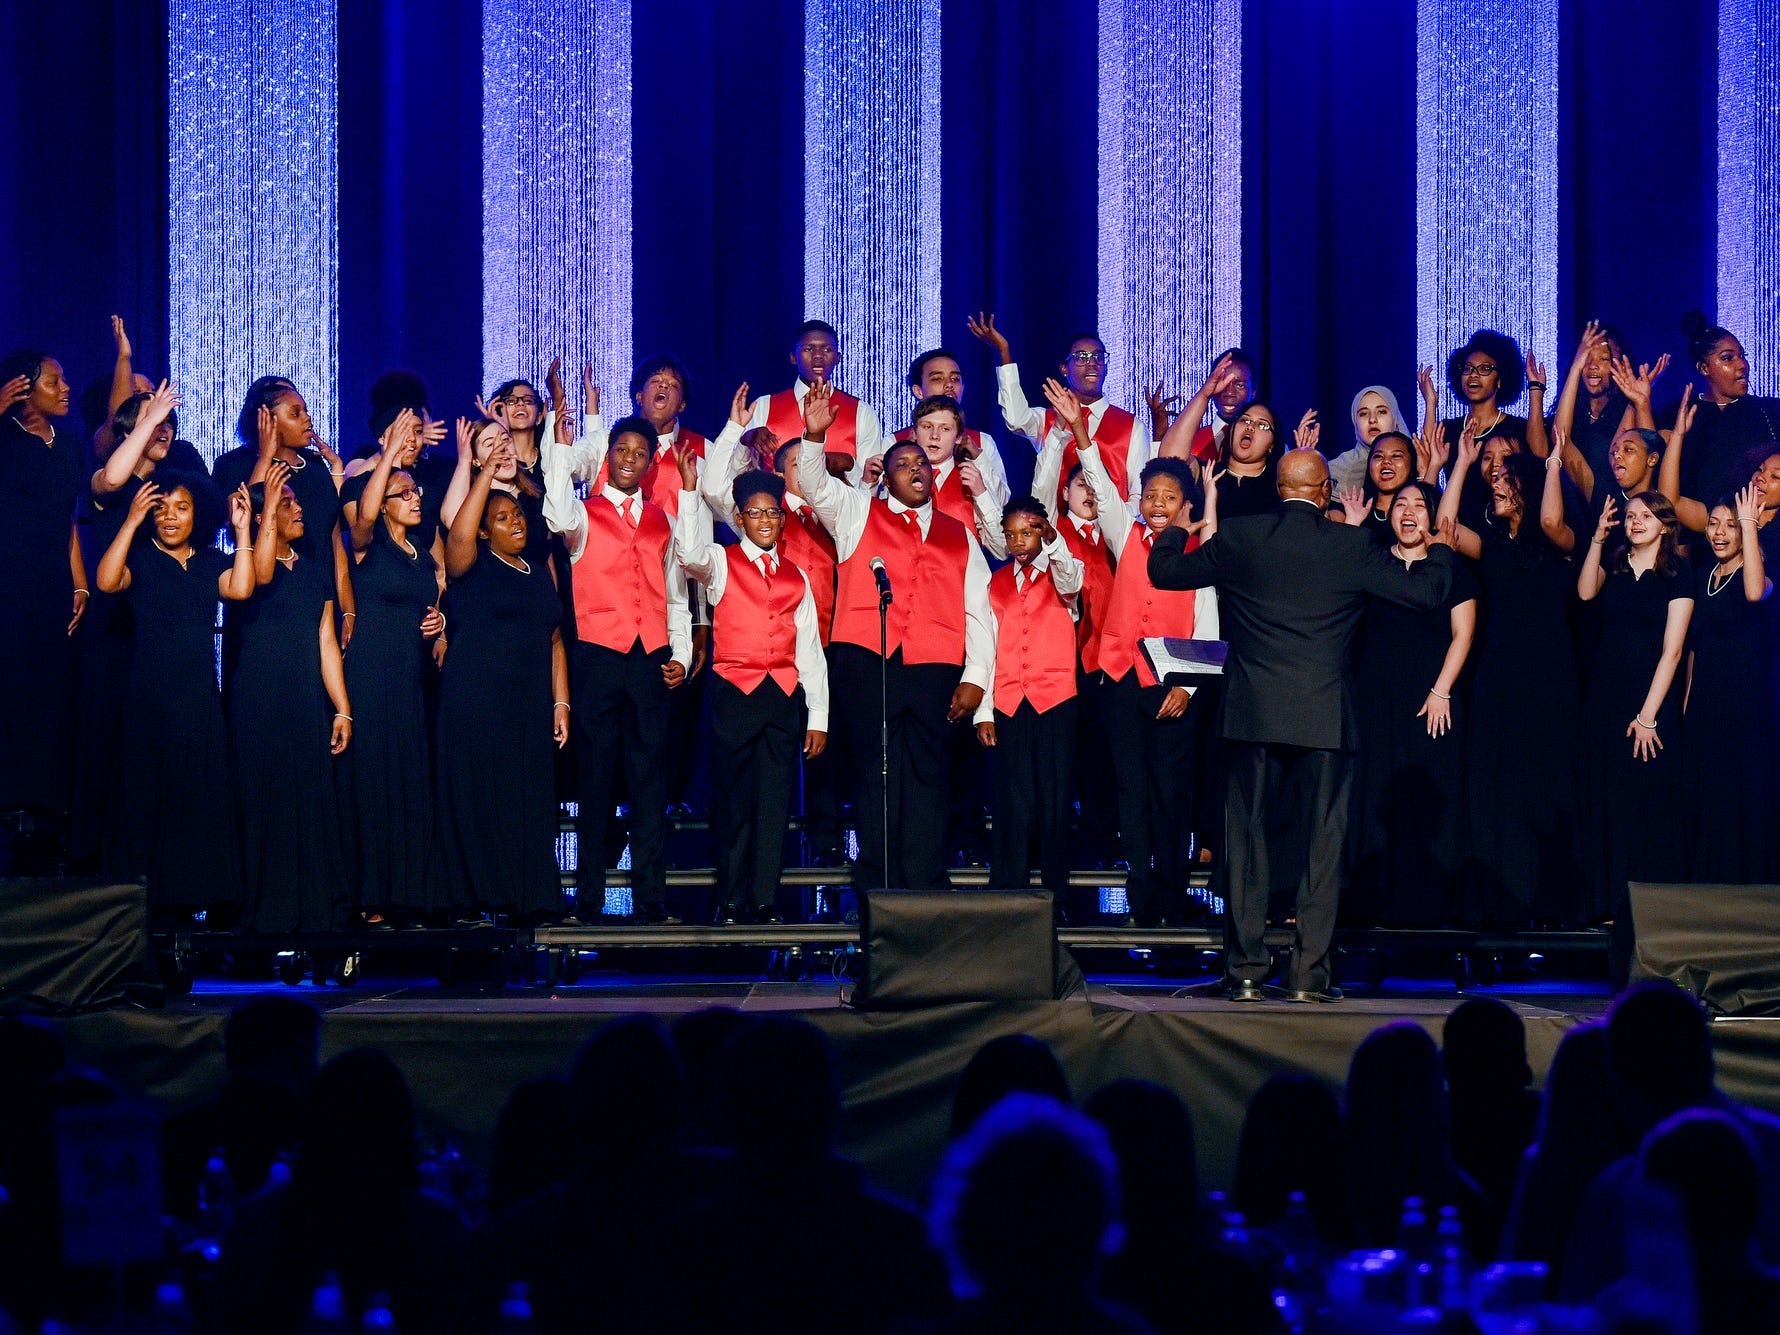 A singing group from Sexton High School under the direction of Josh Hicks performs during the fifth-annual Lansing Promise Dinner on Thursday, April 25, 2019, at the Don Johnson Fieldhouse in Lansing.